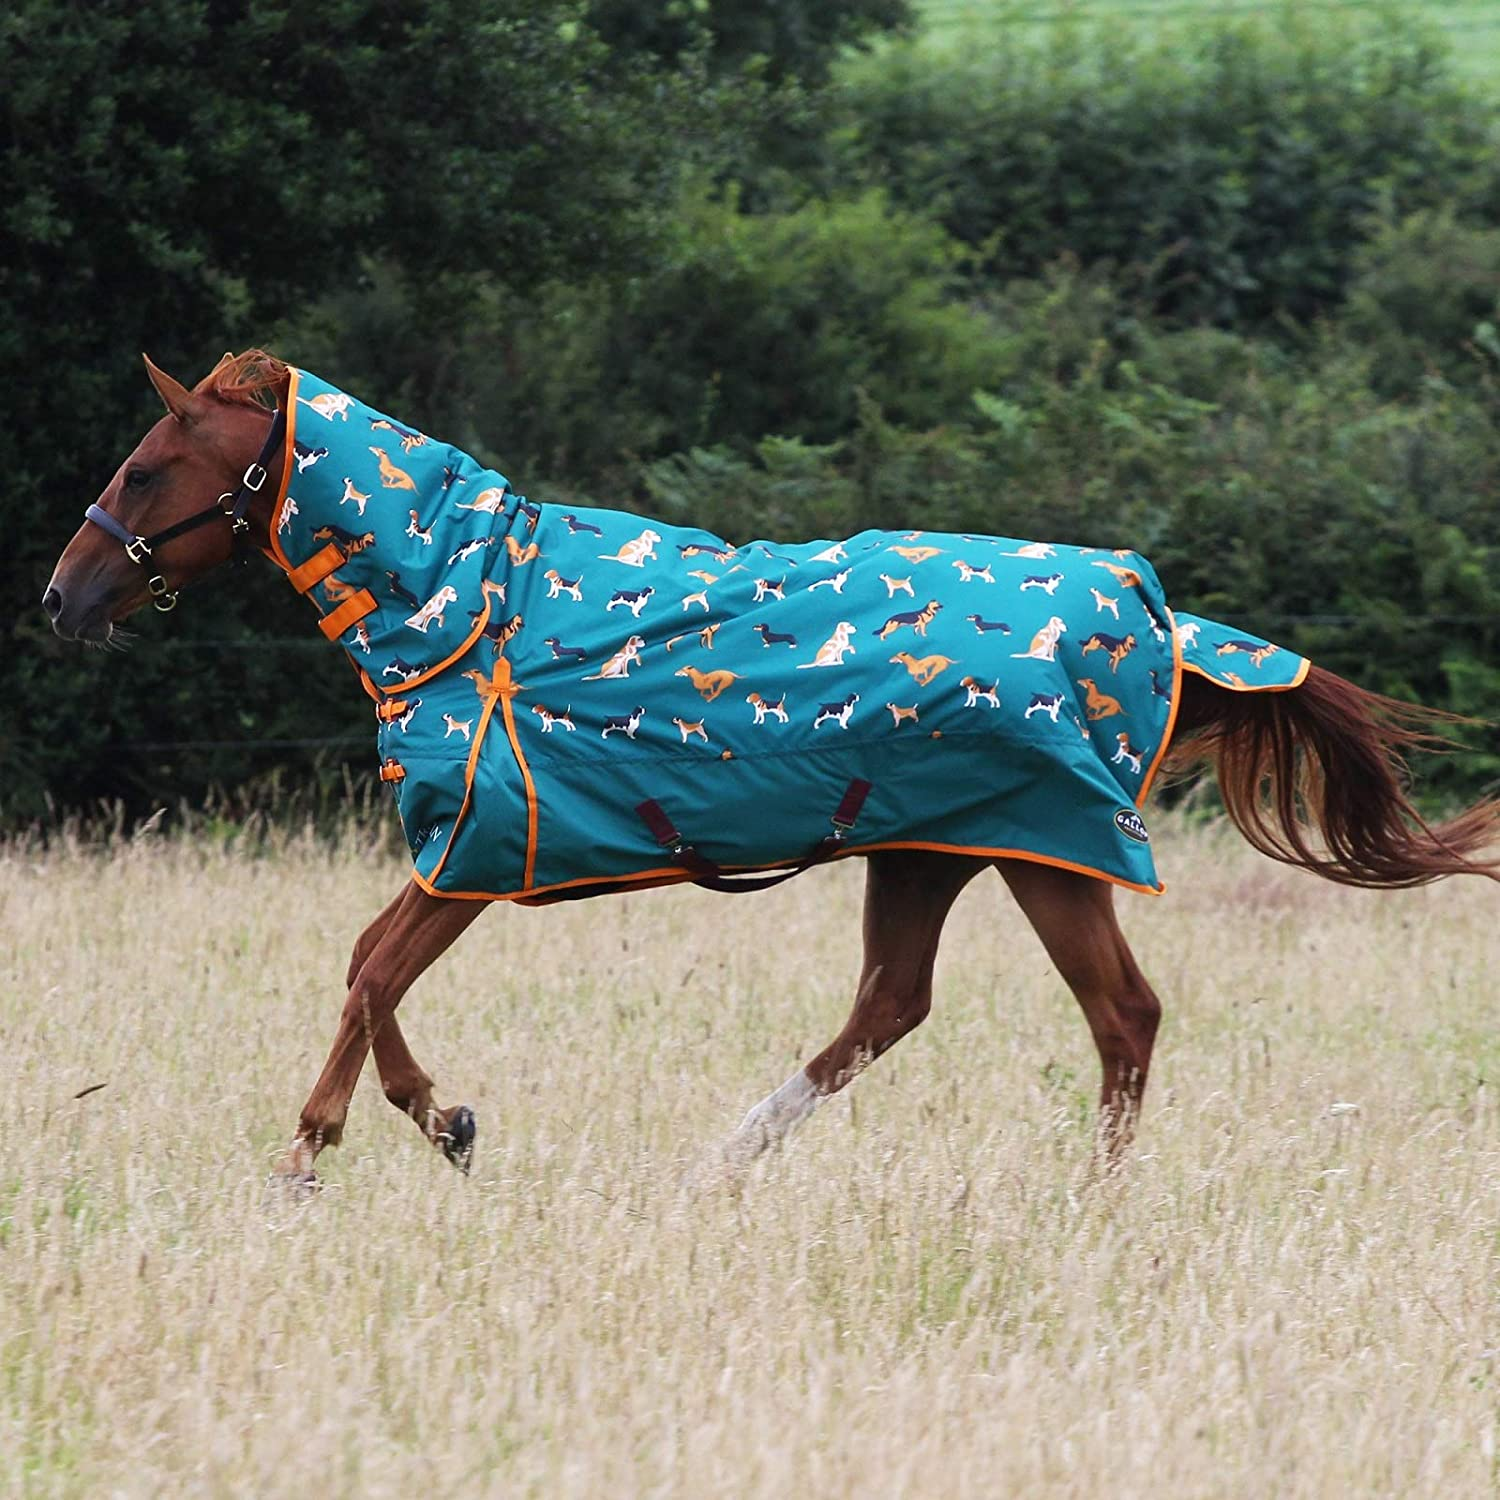 Gallop Trojan 200g Horse Turnout Rug Neck Full Dealing full price reduction Combo Mediumweigh Free shipping / New